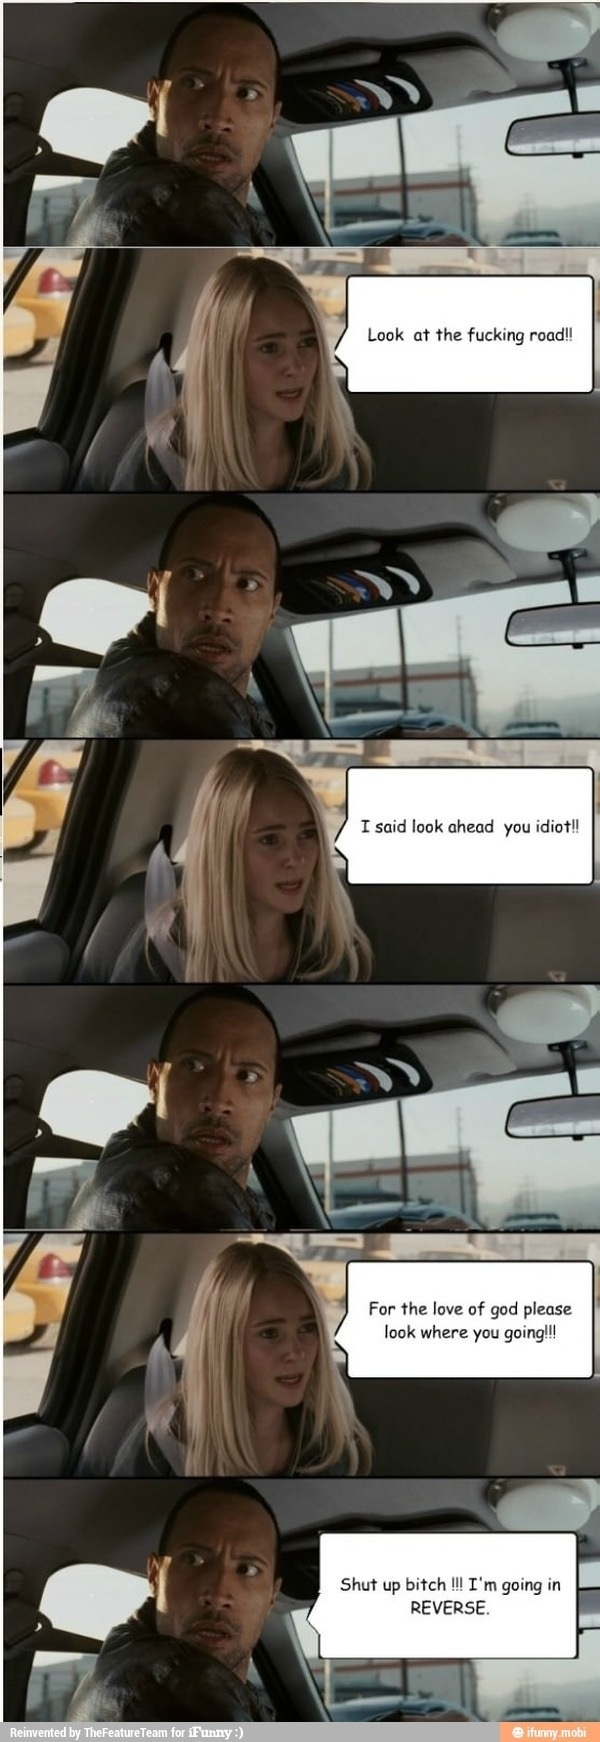 #lol #funny Dwayne Johnson